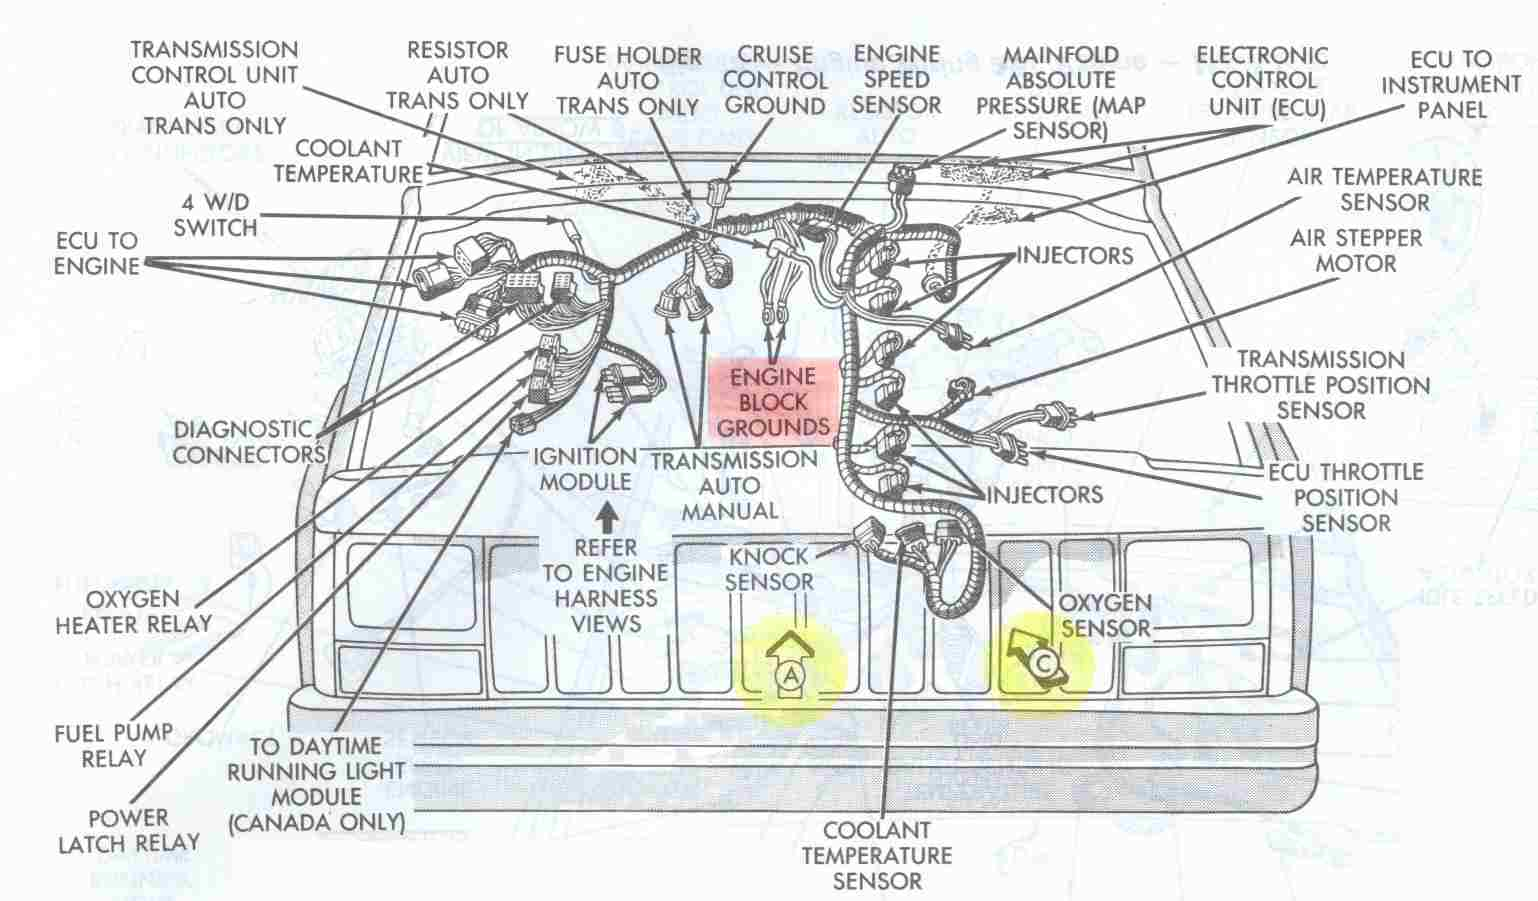 Jeep cherokee electrical diagnosing erratic behavior of engine engine bay schematic showing major electrical ground points for 40l jeep cherokee engines sciox Images